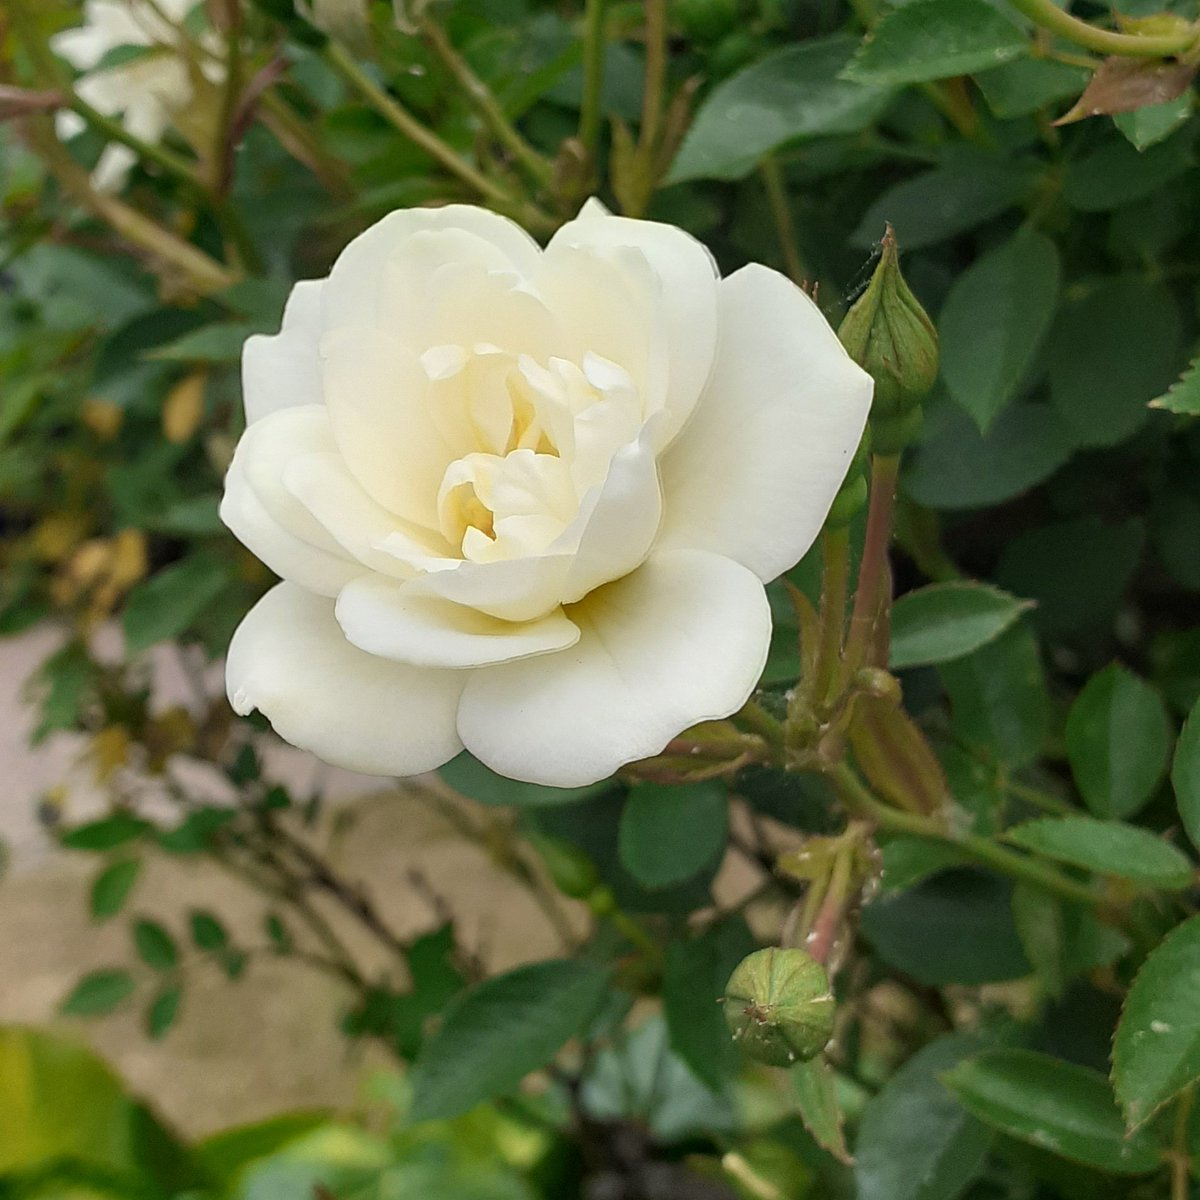 Thought I would pop this pretty cream coloured rose here for bank holiday Monday  #staysafe #Flowers #BankHolidayMondaypic.twitter.com/K3dAHLdJtW